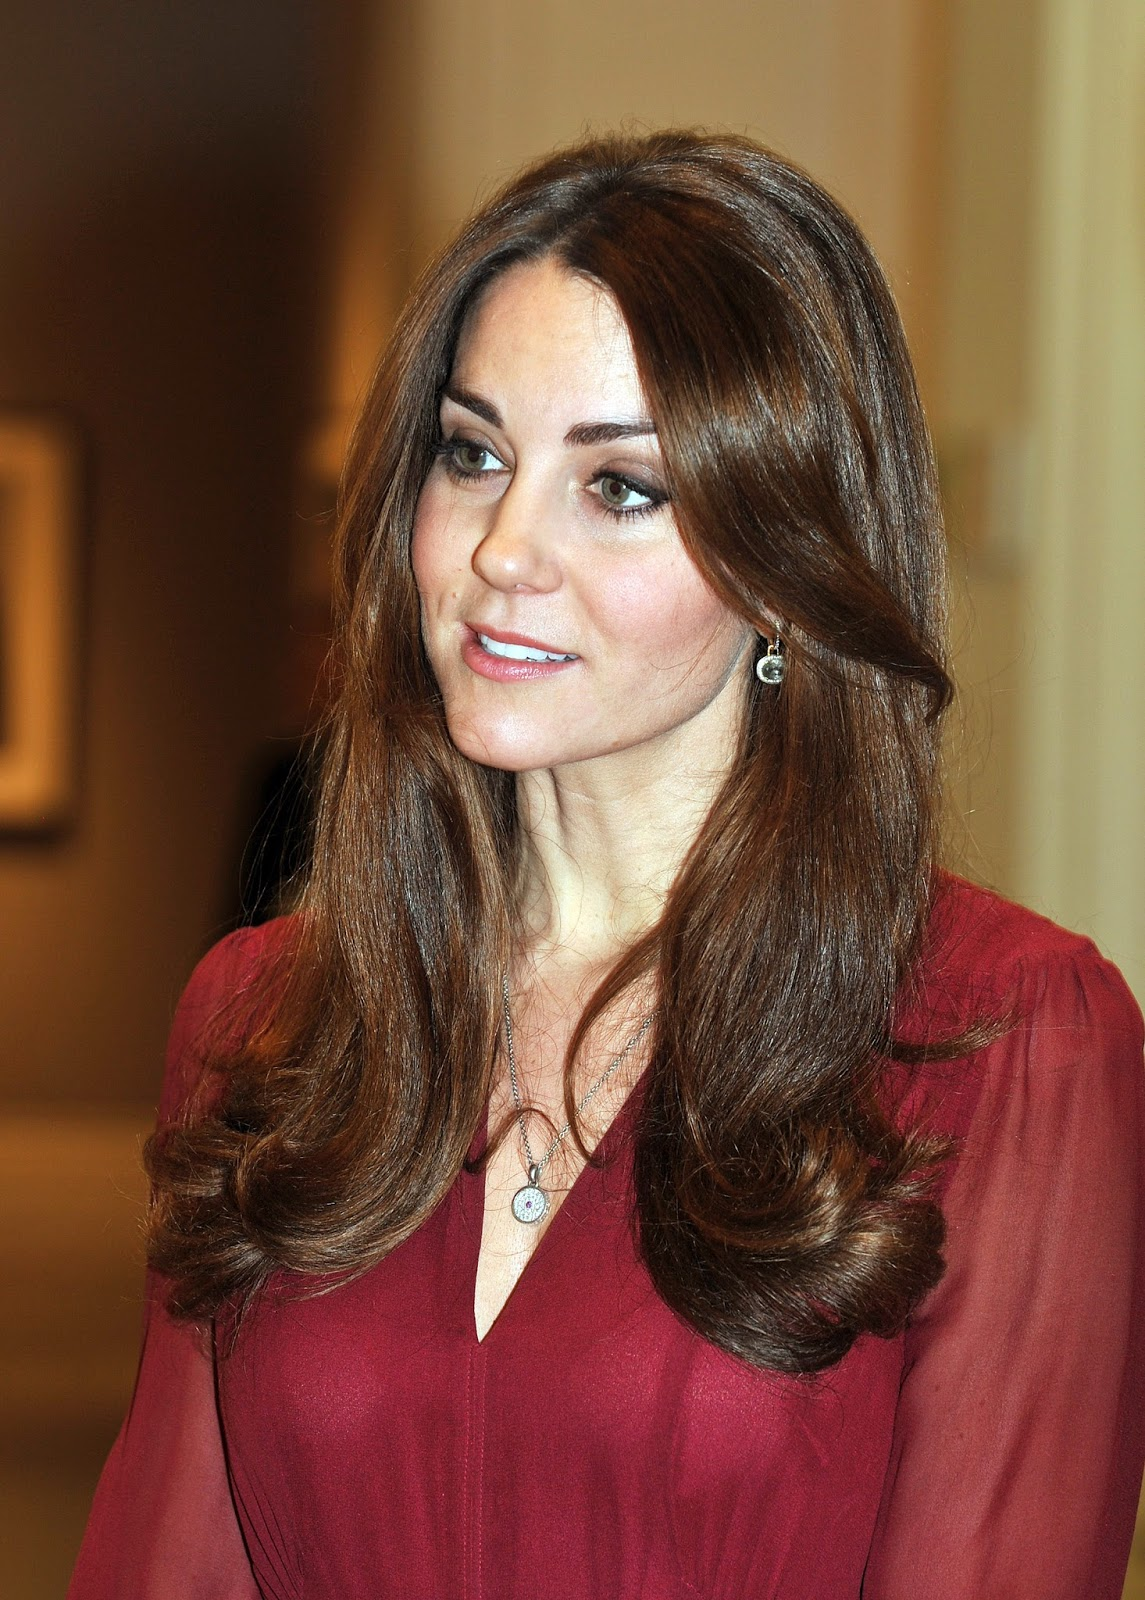 Kate Middleton Hairstyles 2013 | Hairstyles he